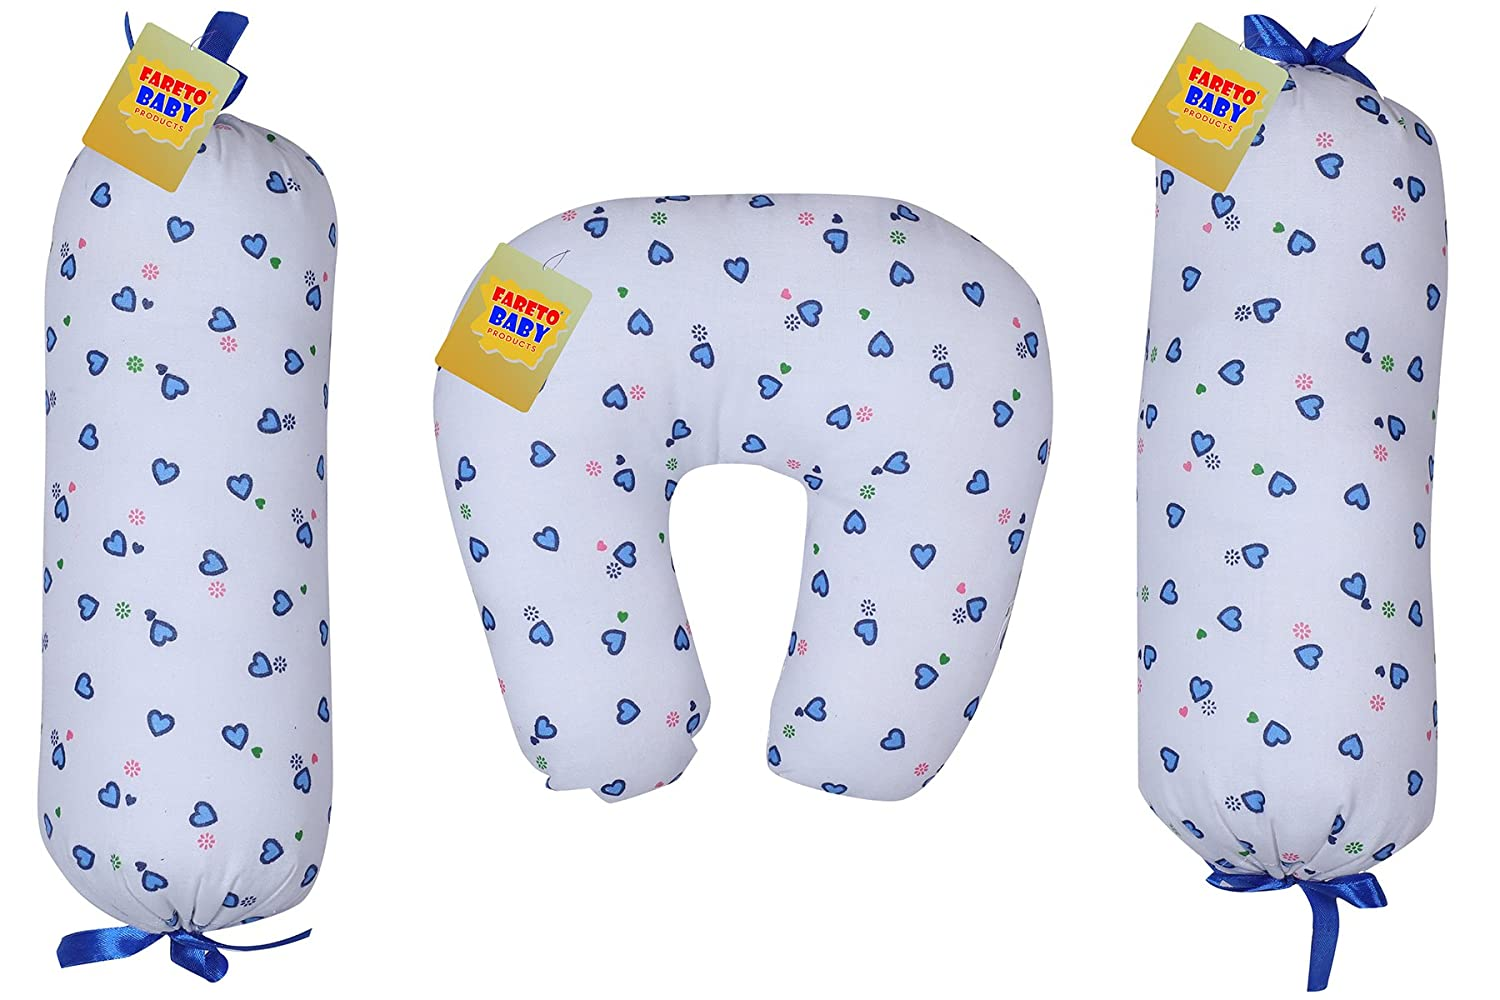 Fareto® Baby Combo of Baby Soft U-Shape Pillow & 2 Matching Lot Pillows/Recorn Filling Soft Pillow(0-3 Months)(Blue)